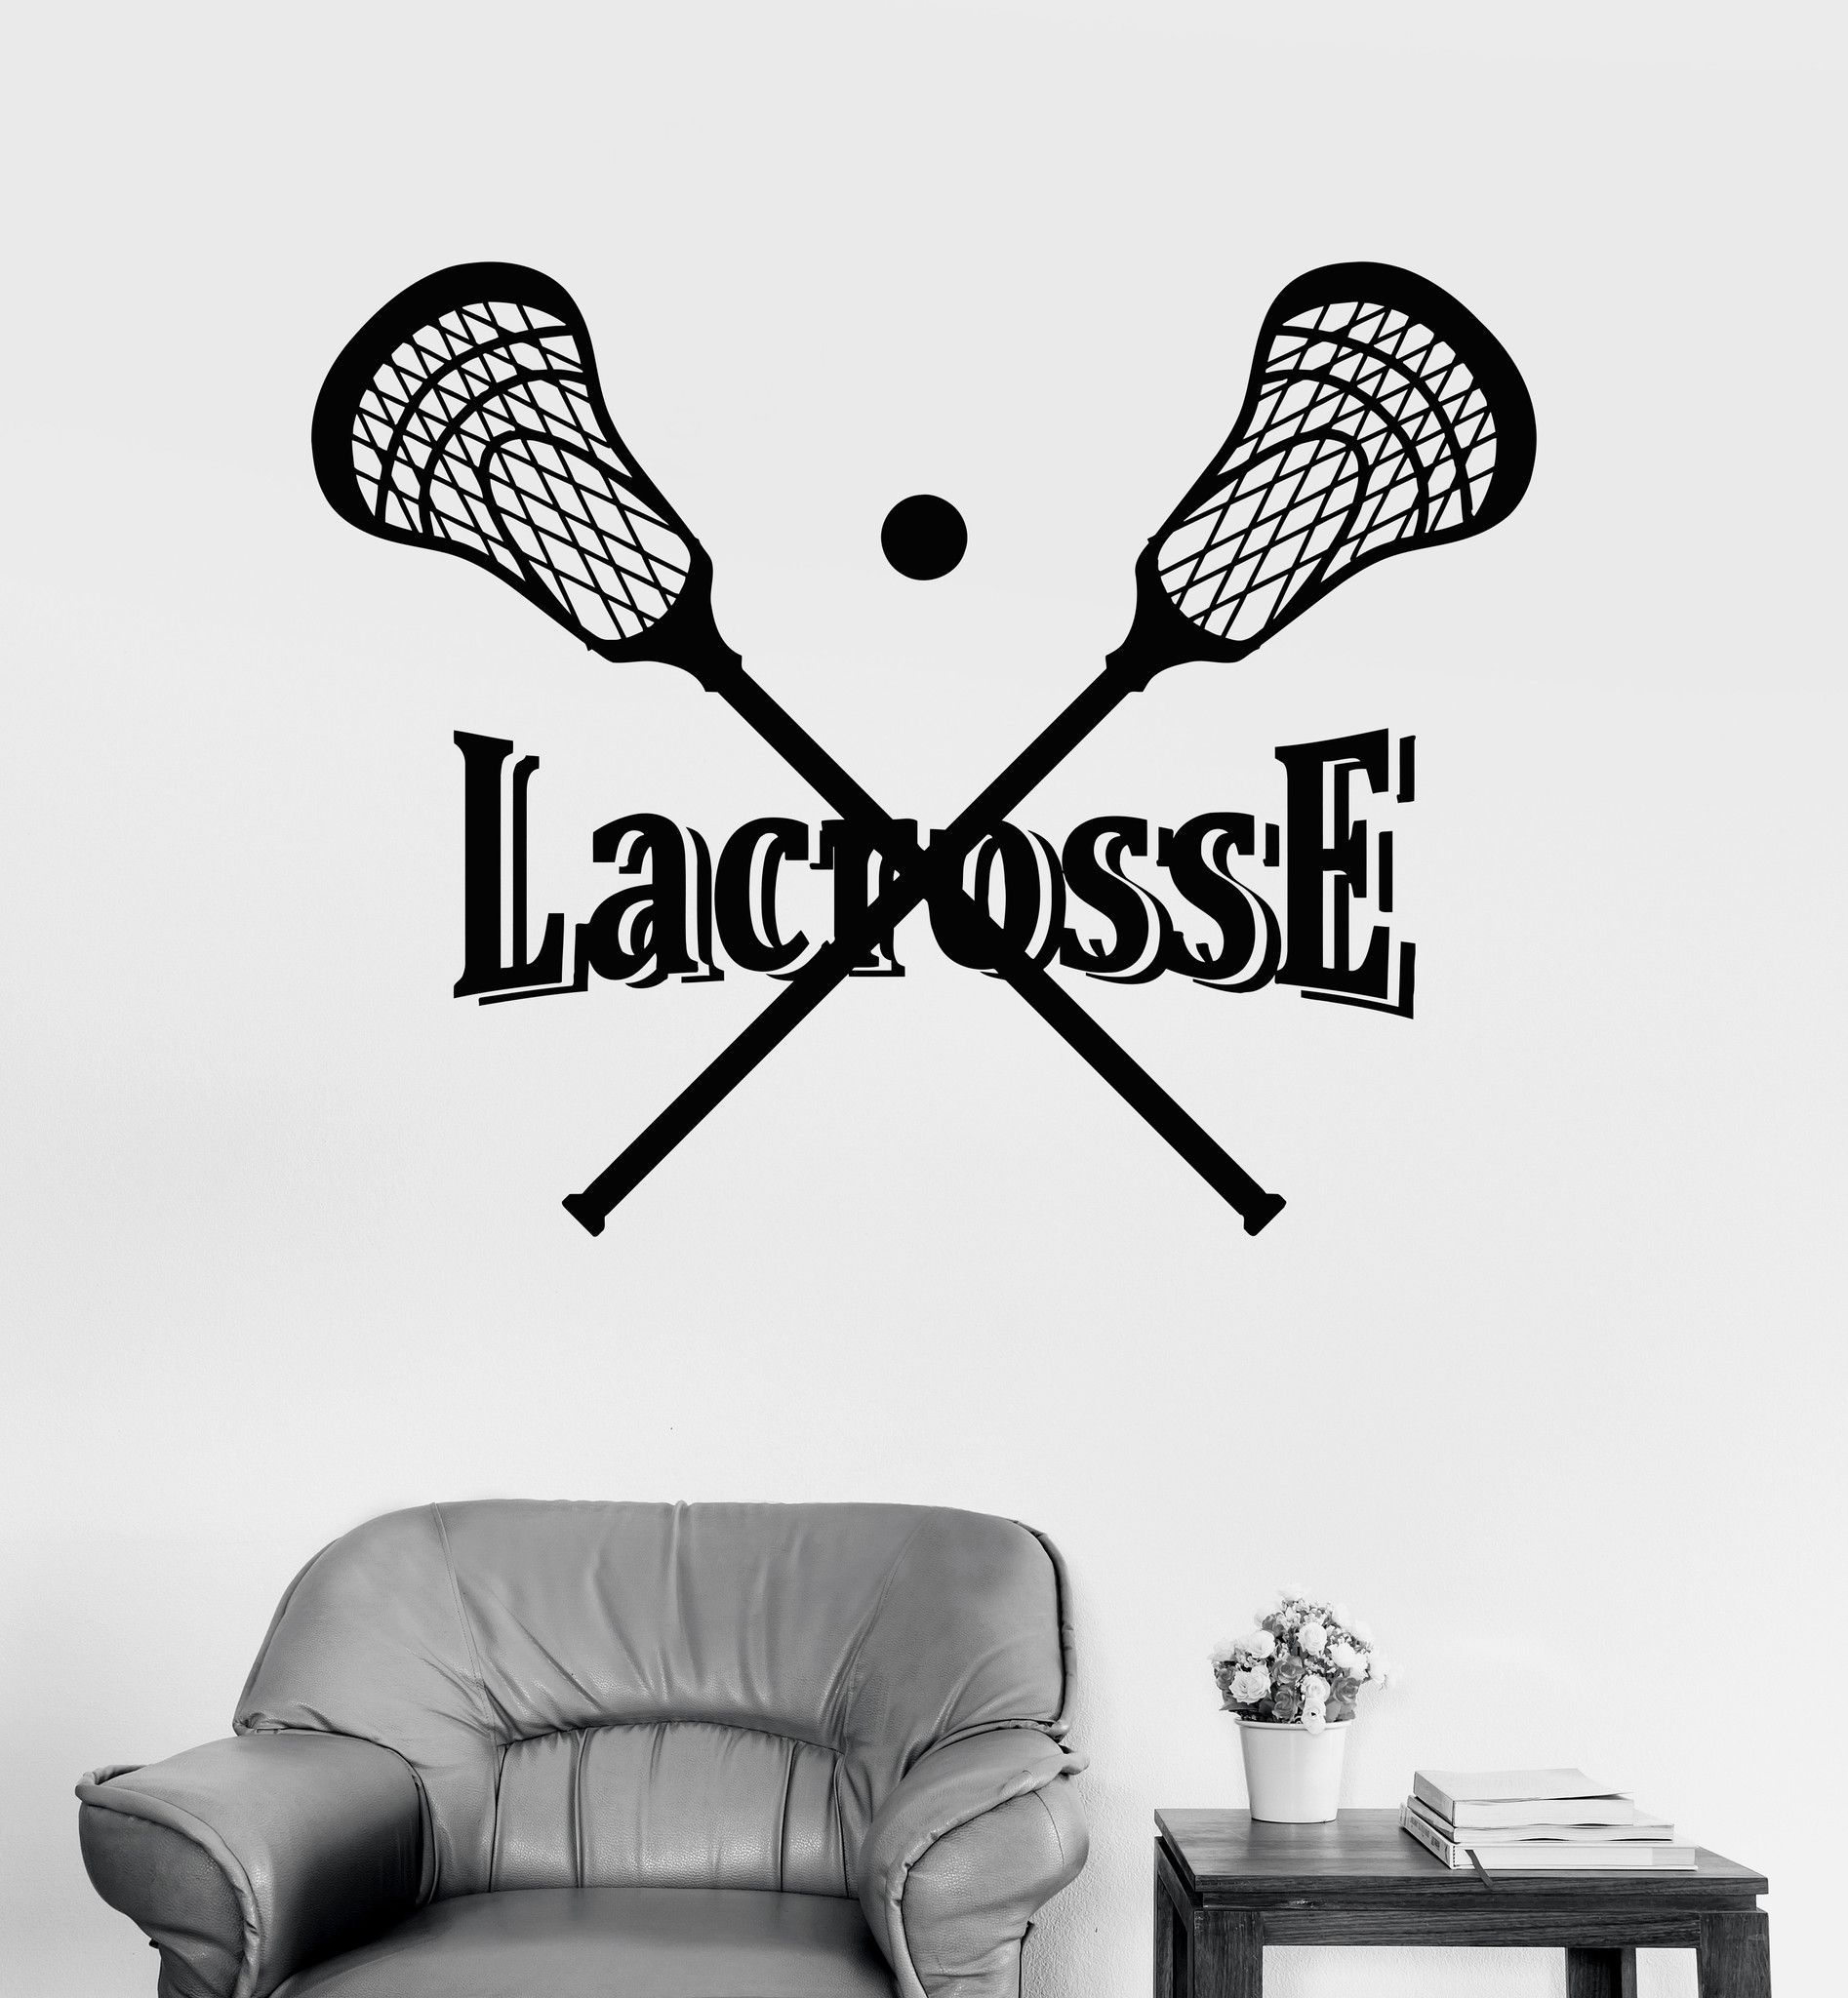 Vinyl Wall Decal Lacrosse Stick And Ball Player Sports Stickers (ig4062)